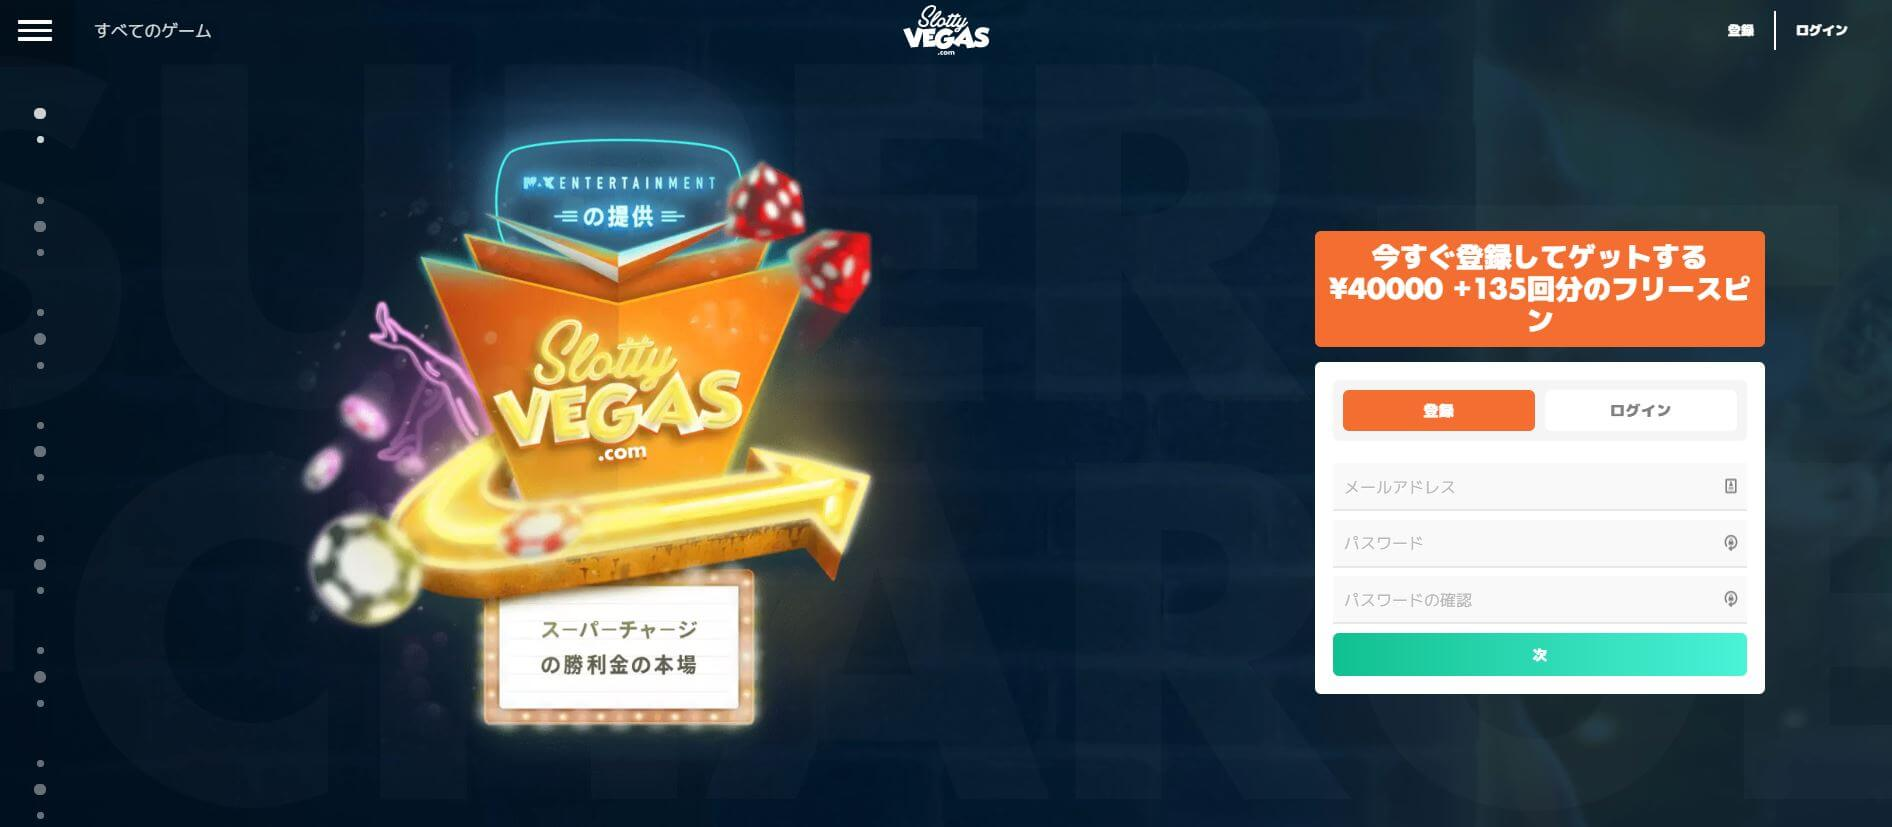 slotty vegas japanese home page